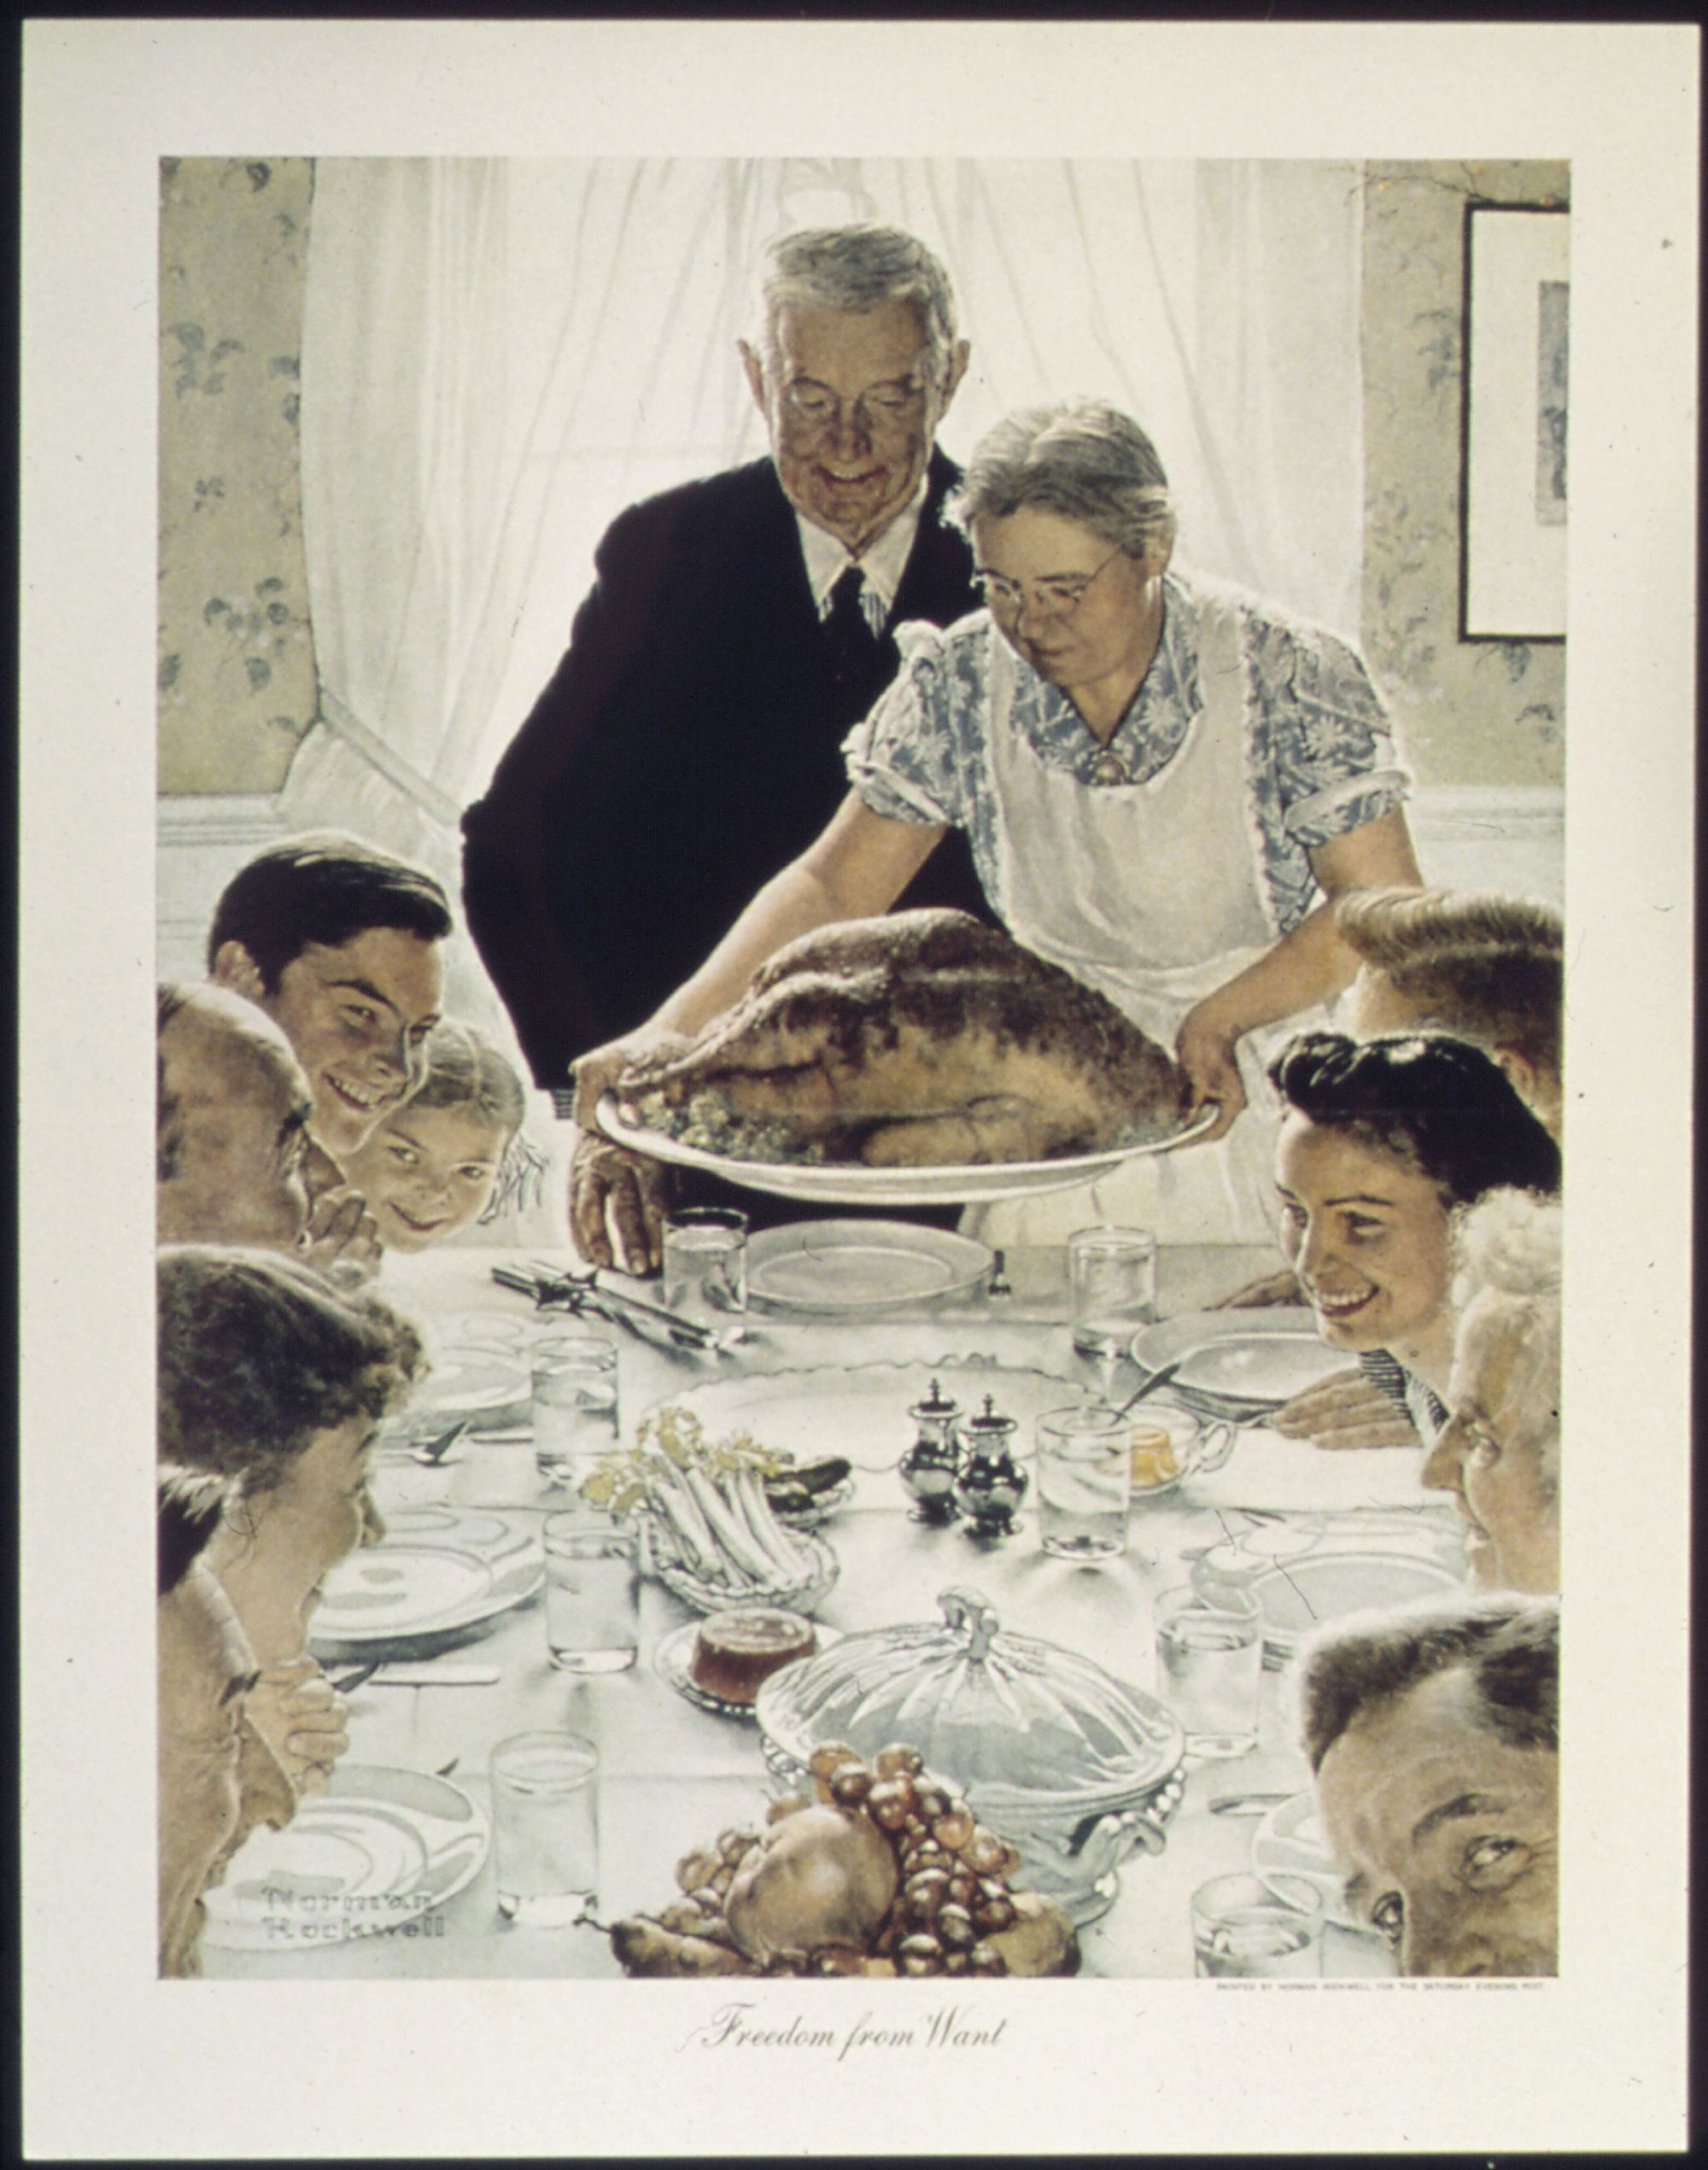 Freedom from want, Norman Rockwell, 1942.